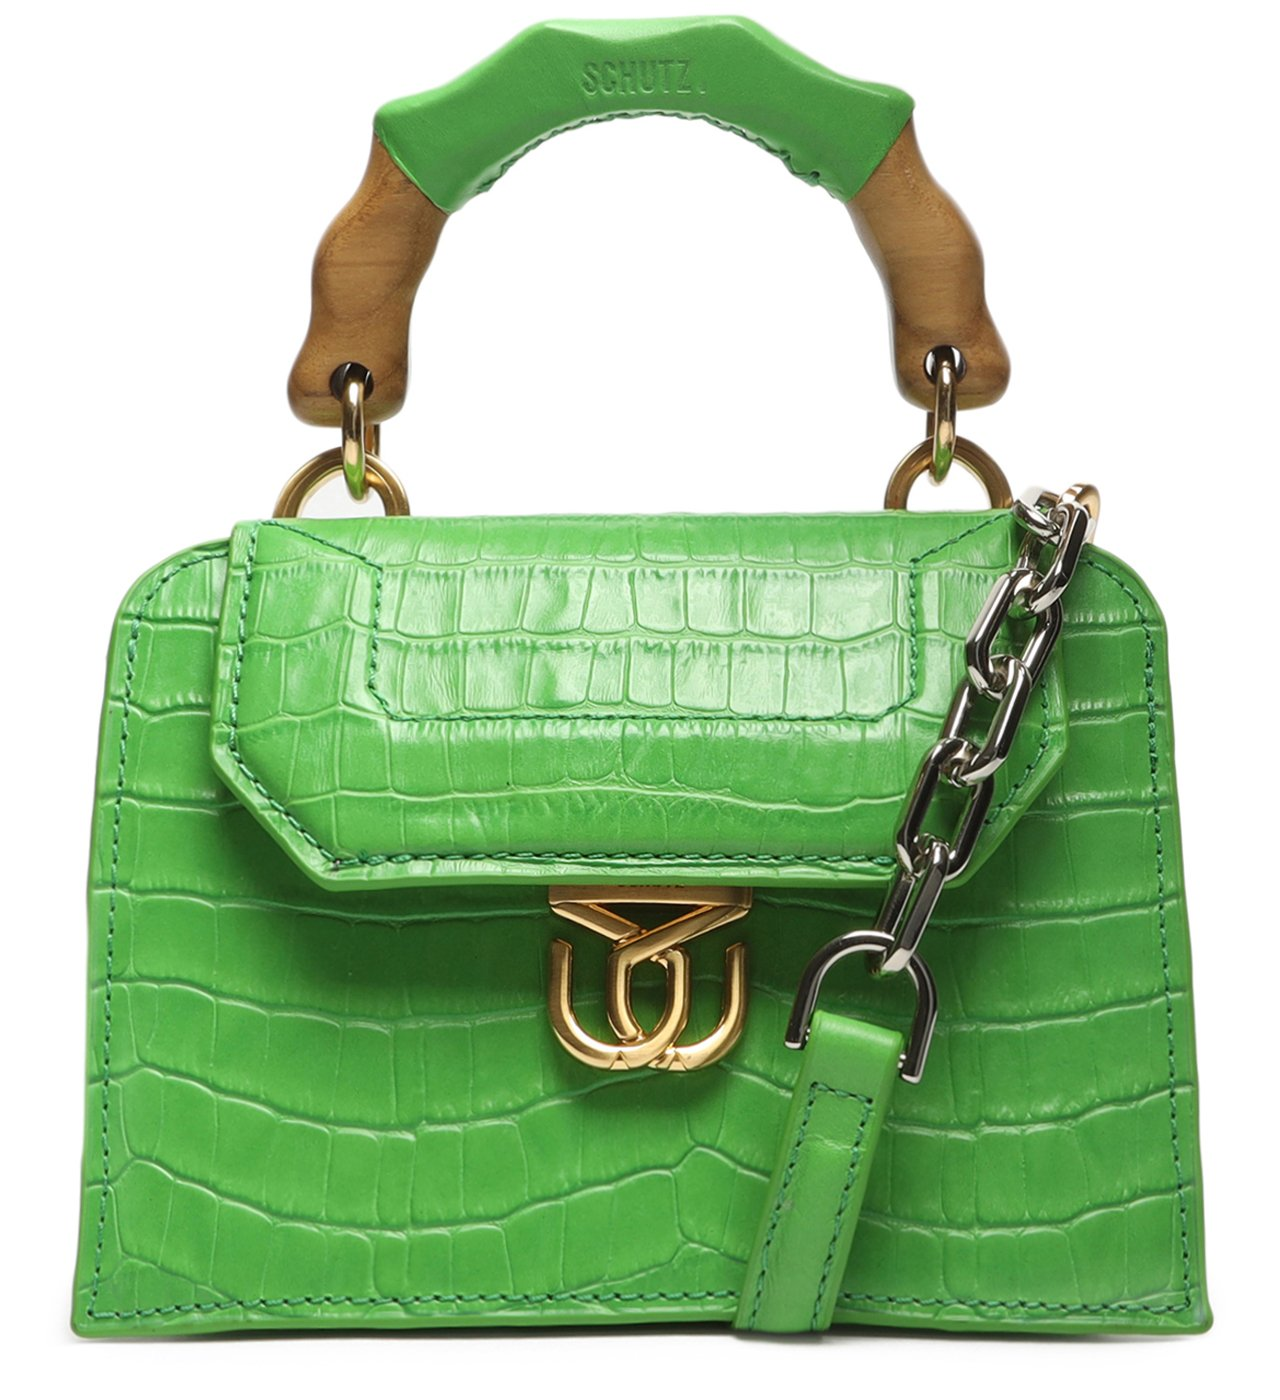 Crossbody Believe Bright Croco Green | Schutz